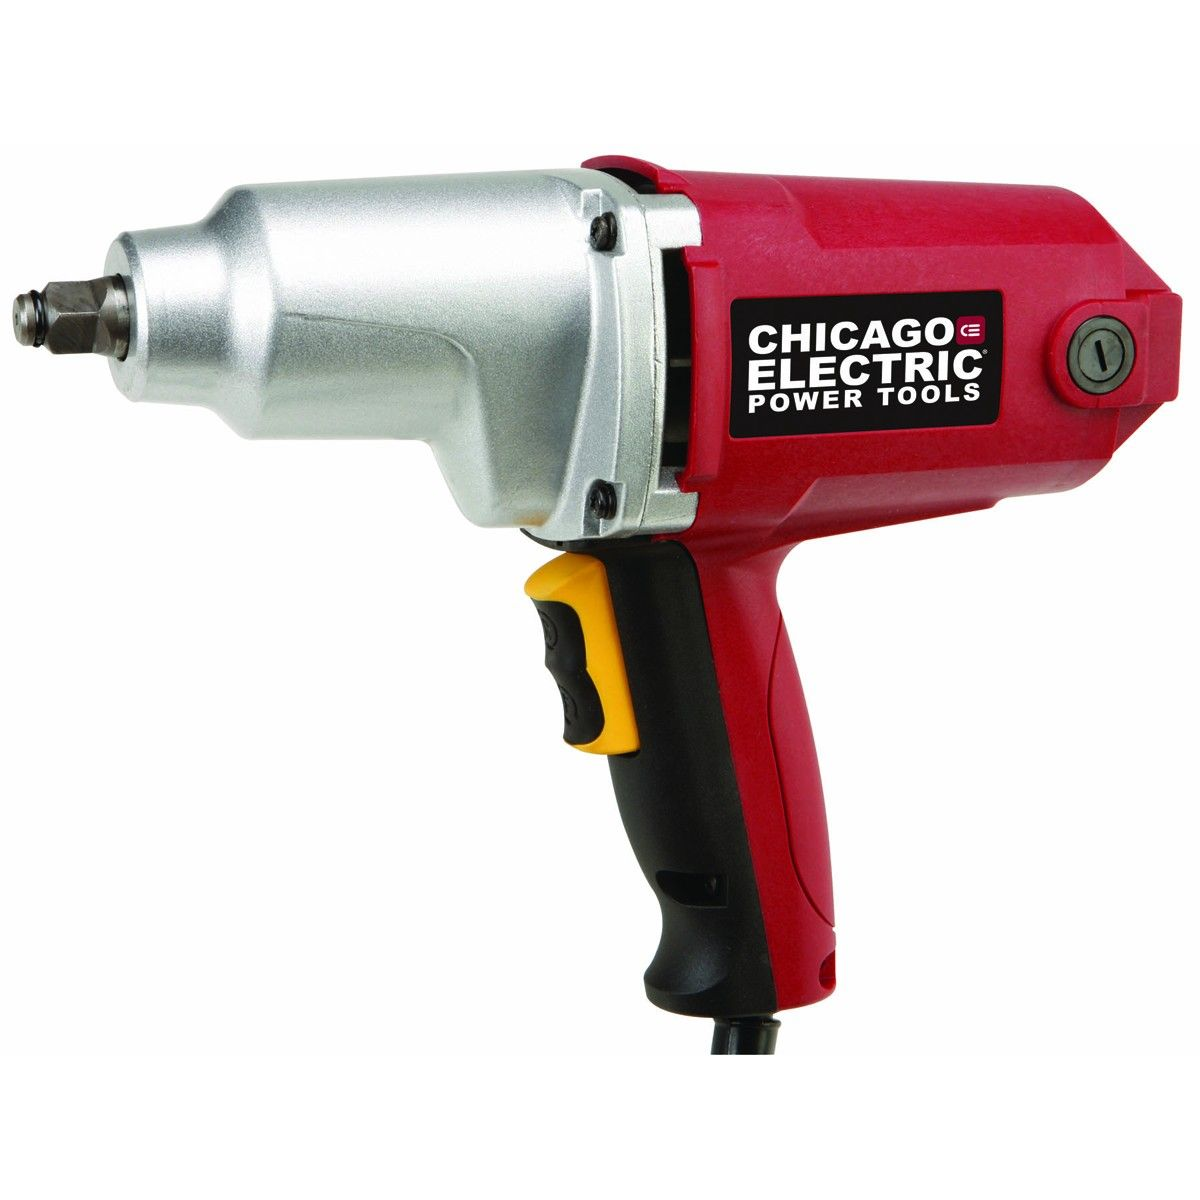 7 Amp Corded 1 2 In Impact Wrench Electric Impact Wrench Impact Wrench Power Tools For Sale